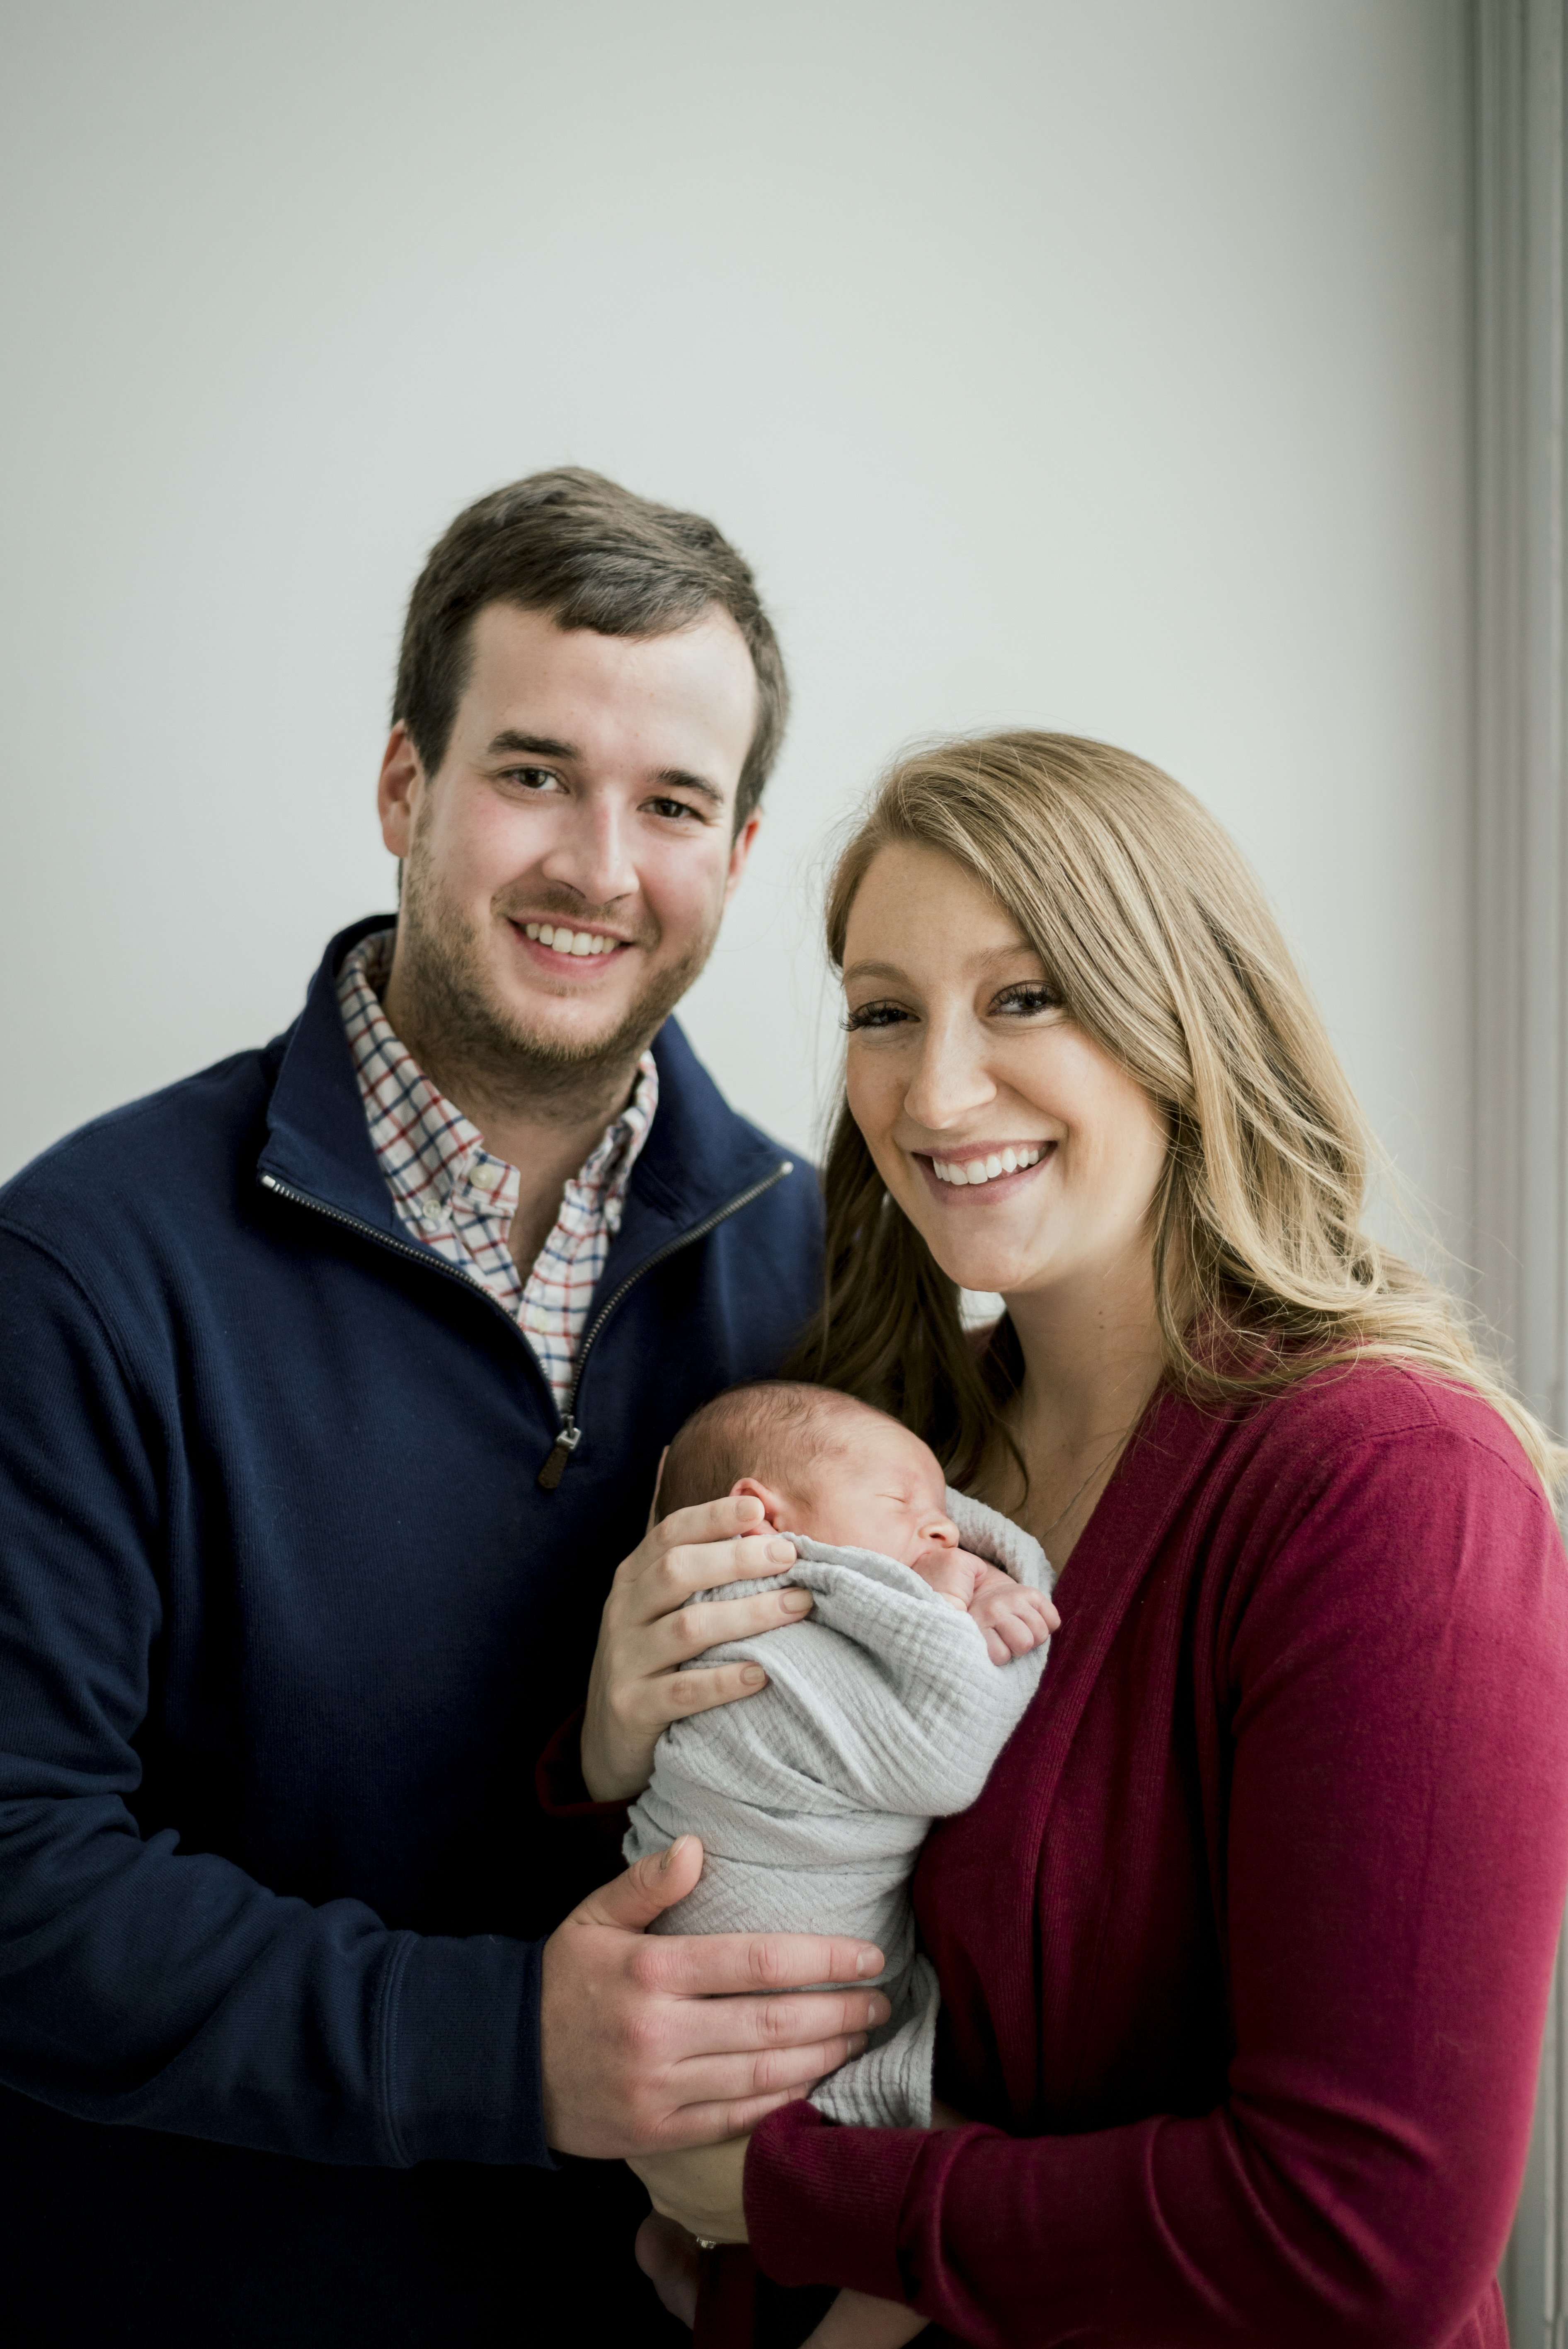 Newborn family photography in Dayton, Ohio.